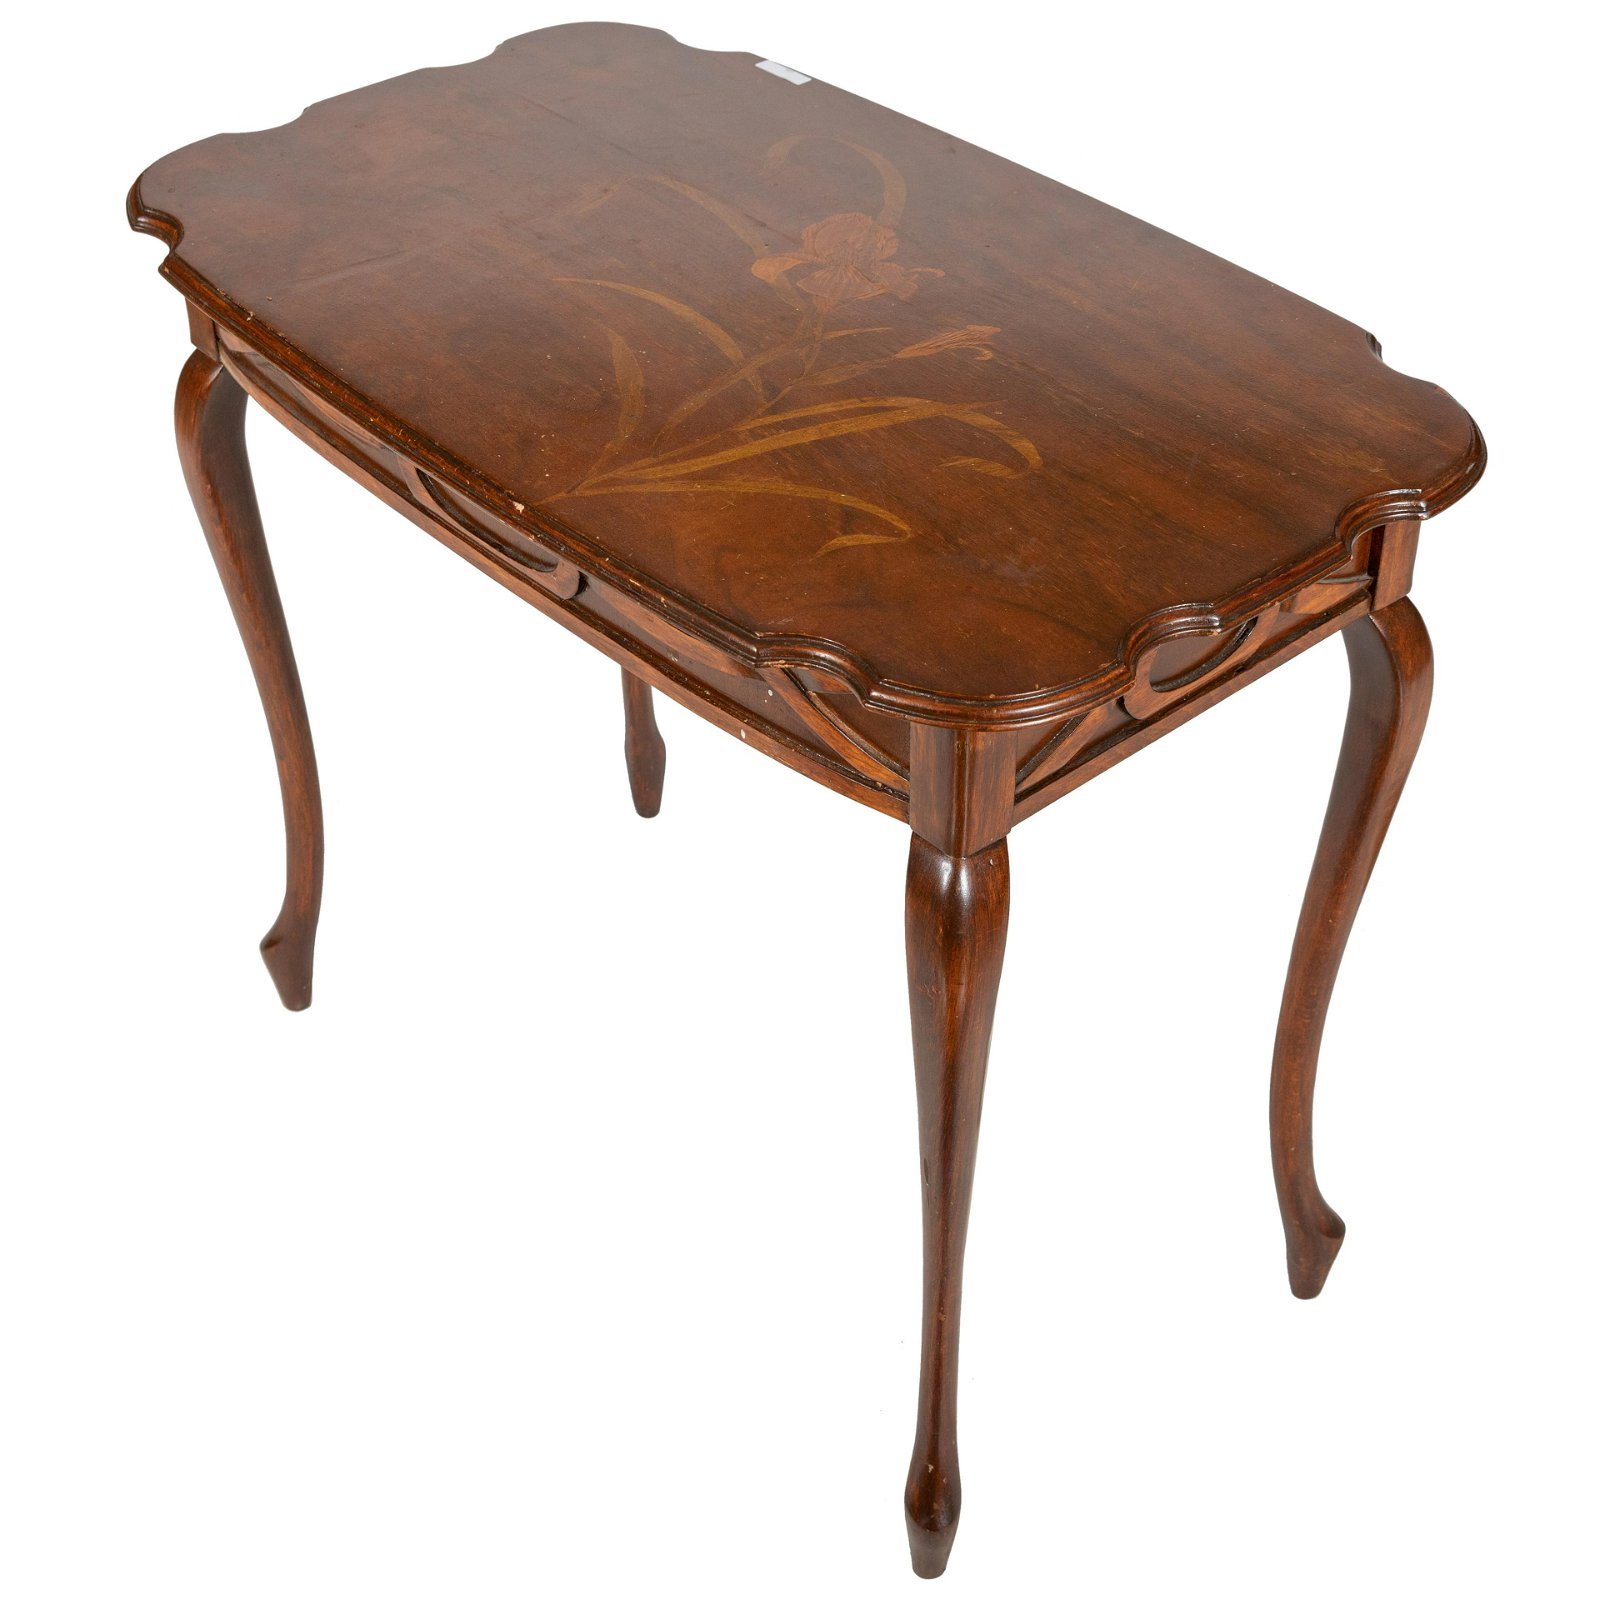 Art Nouveau Style Inlaid Lamp Table